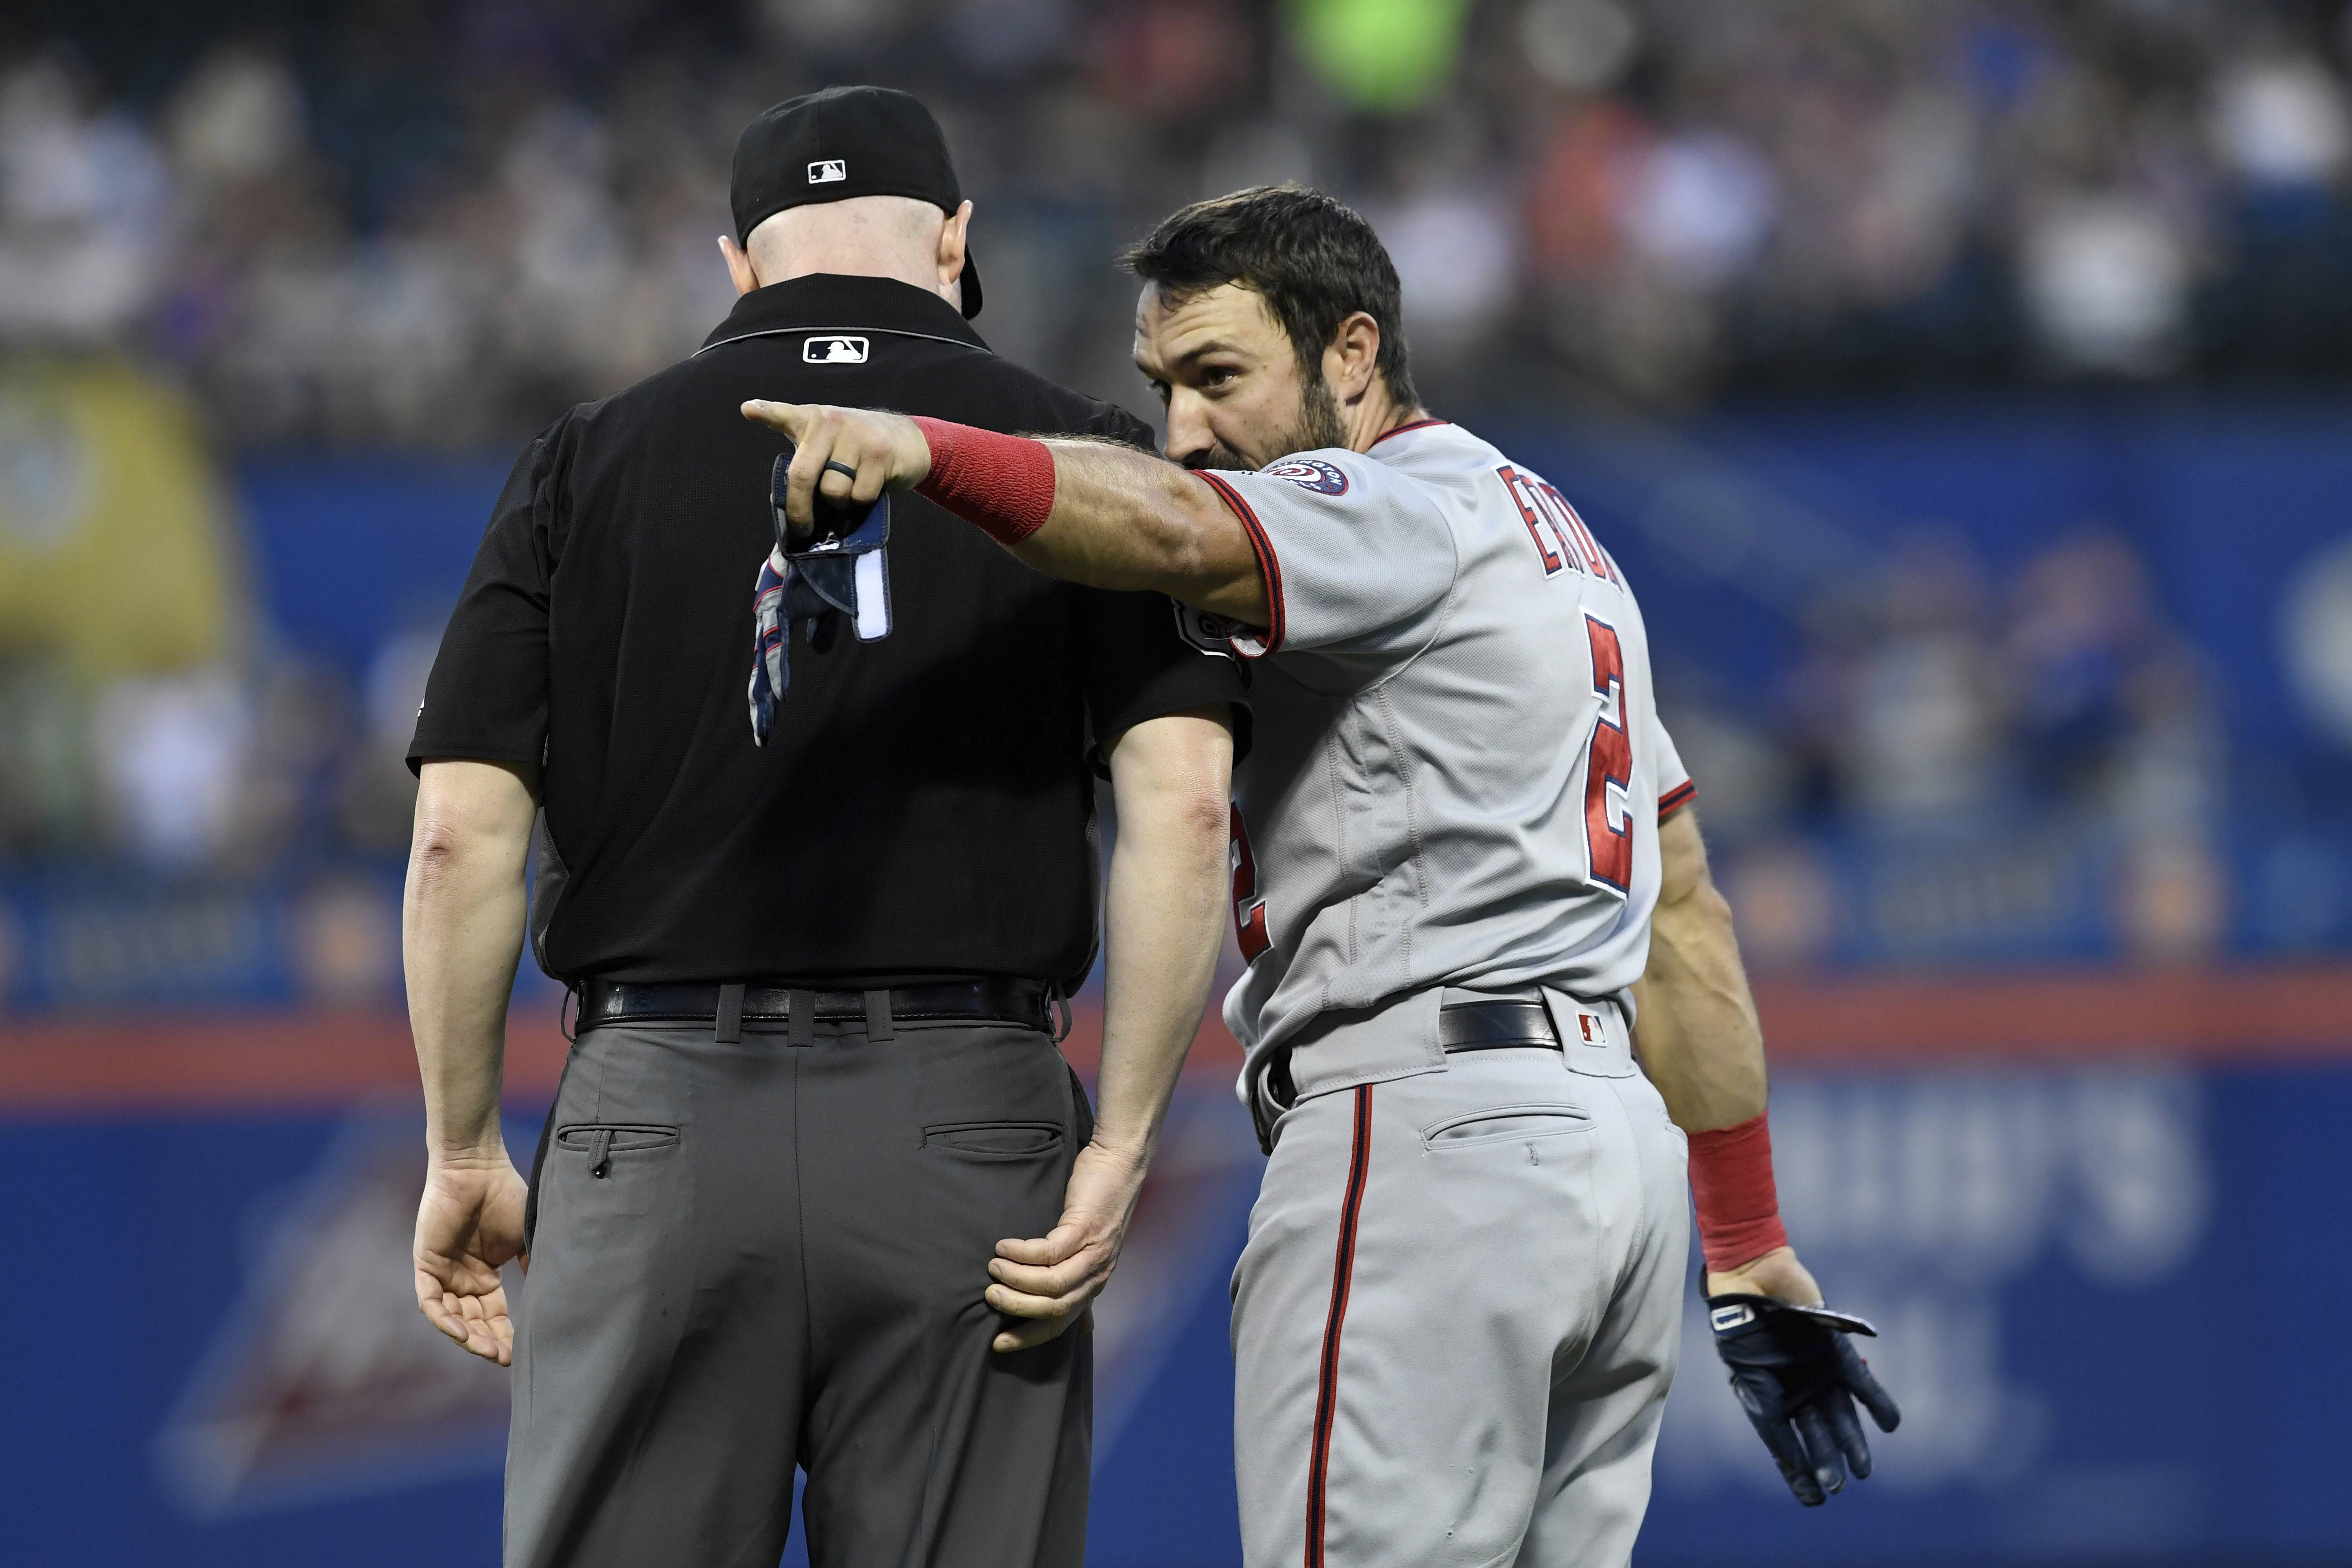 Washington Nationals' Adam Eaton, right, shouts toward New York Mets third baseman Todd Frazier after a double play was turned as first base umpire Mike Estabrook, left, stands by him in a baseball game Monday, May 20, 2019, in New York. (AP Photo/Sarah Stier)